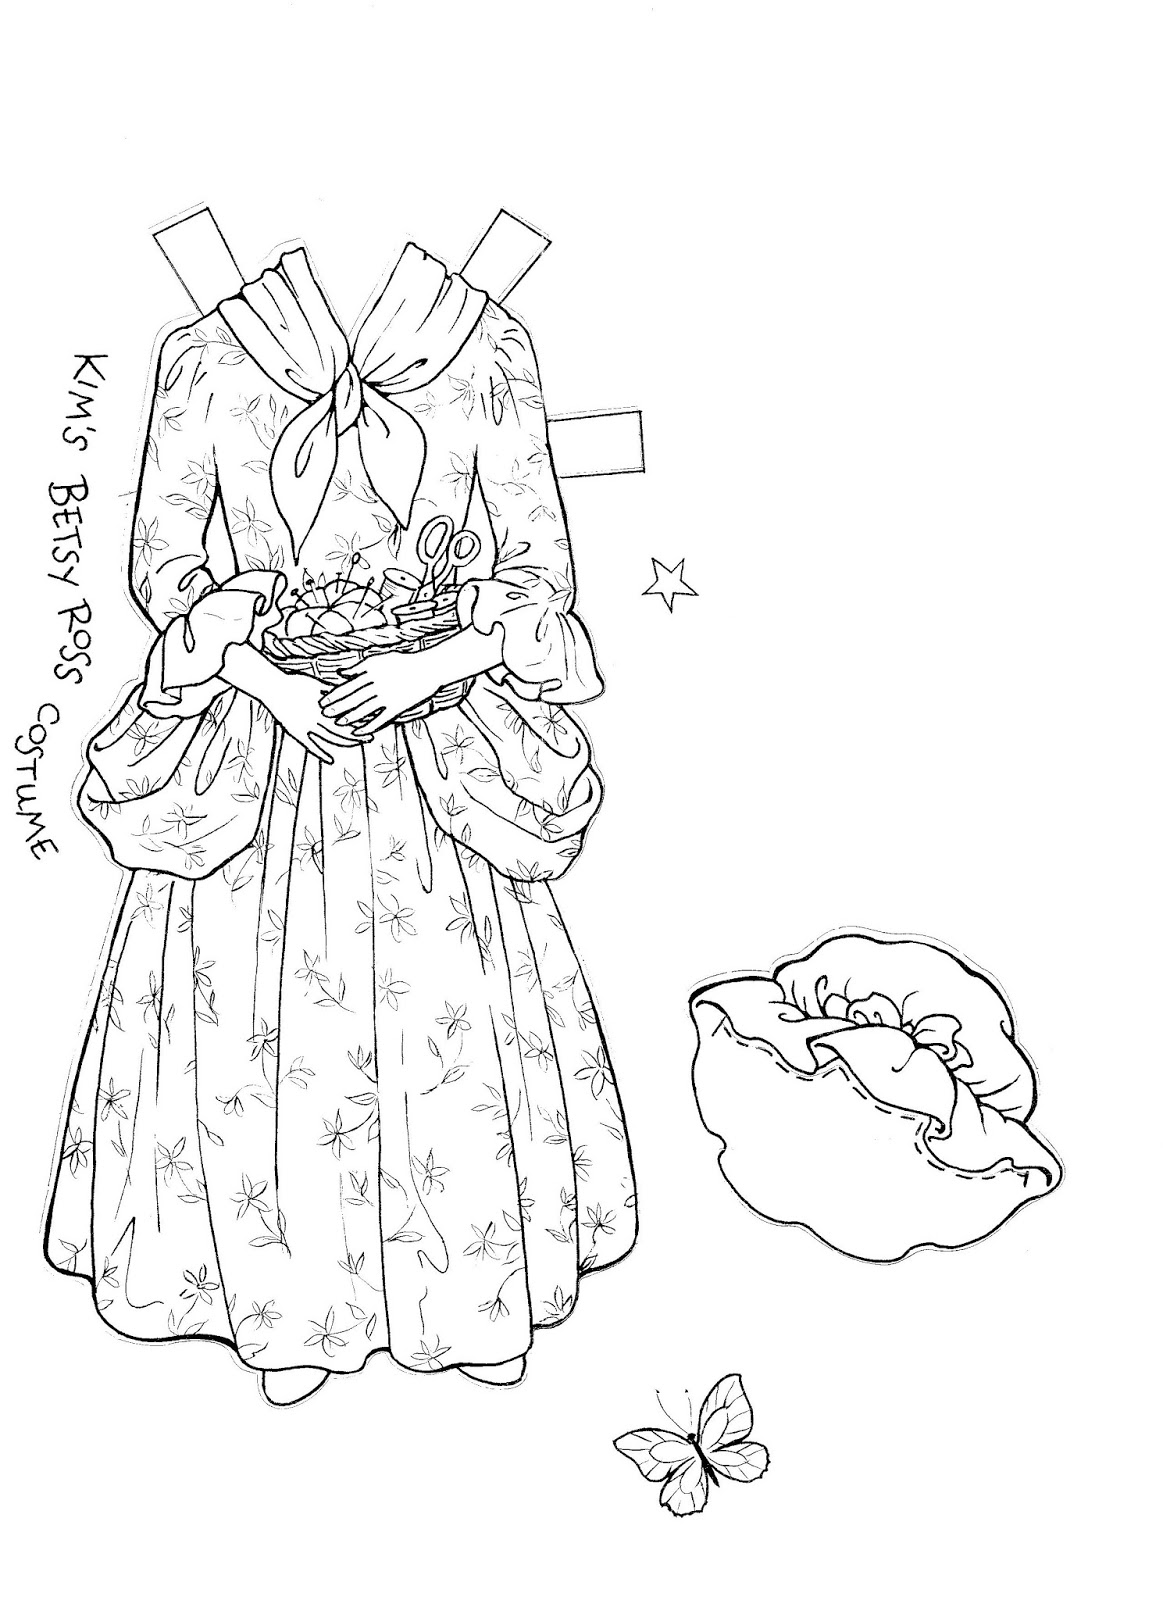 red farm studio coloring pages - photo#19